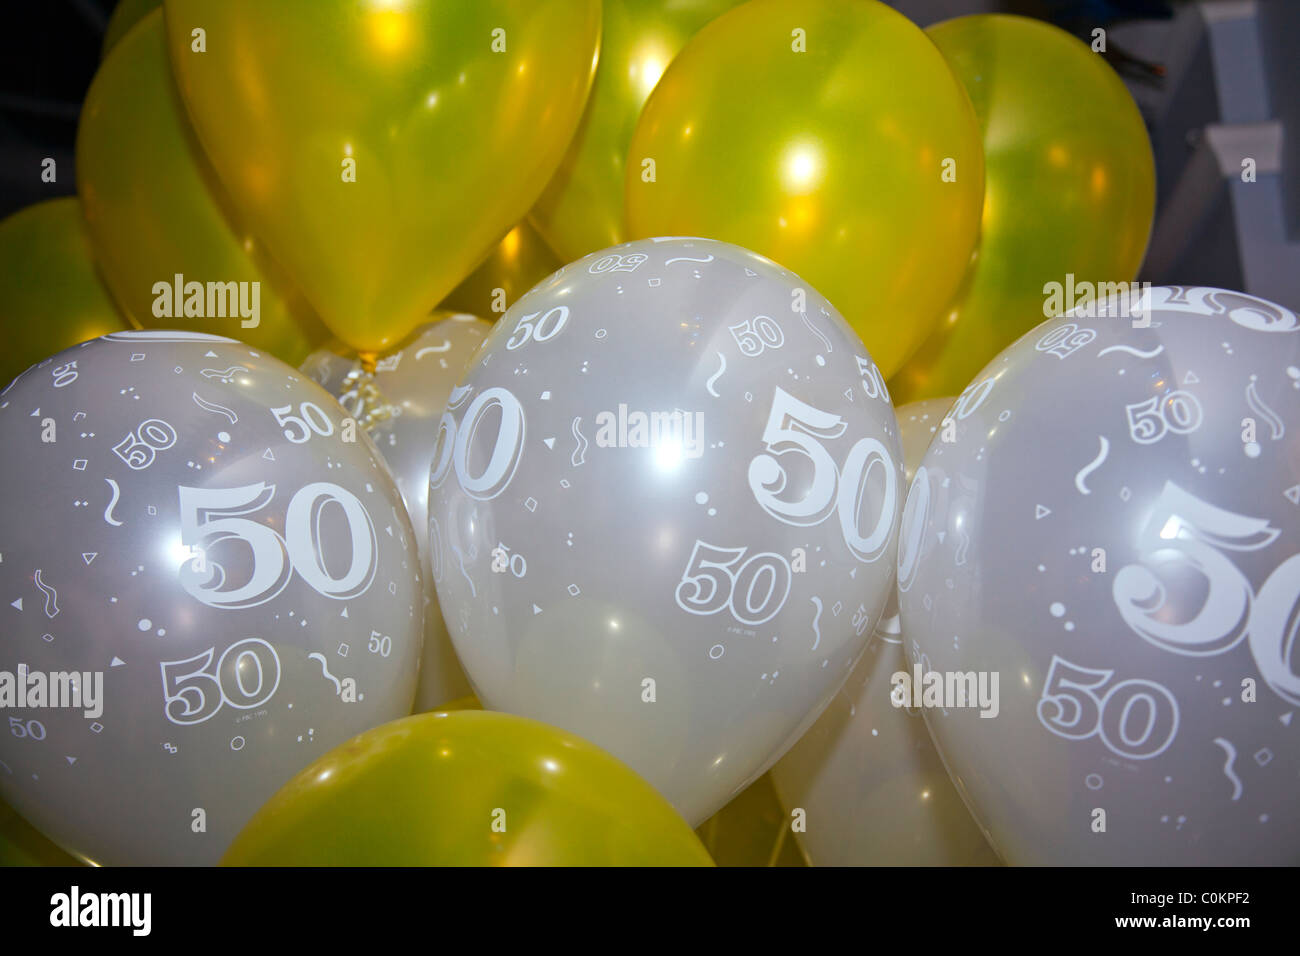 50th Birthday Balloons Celebration Decoration